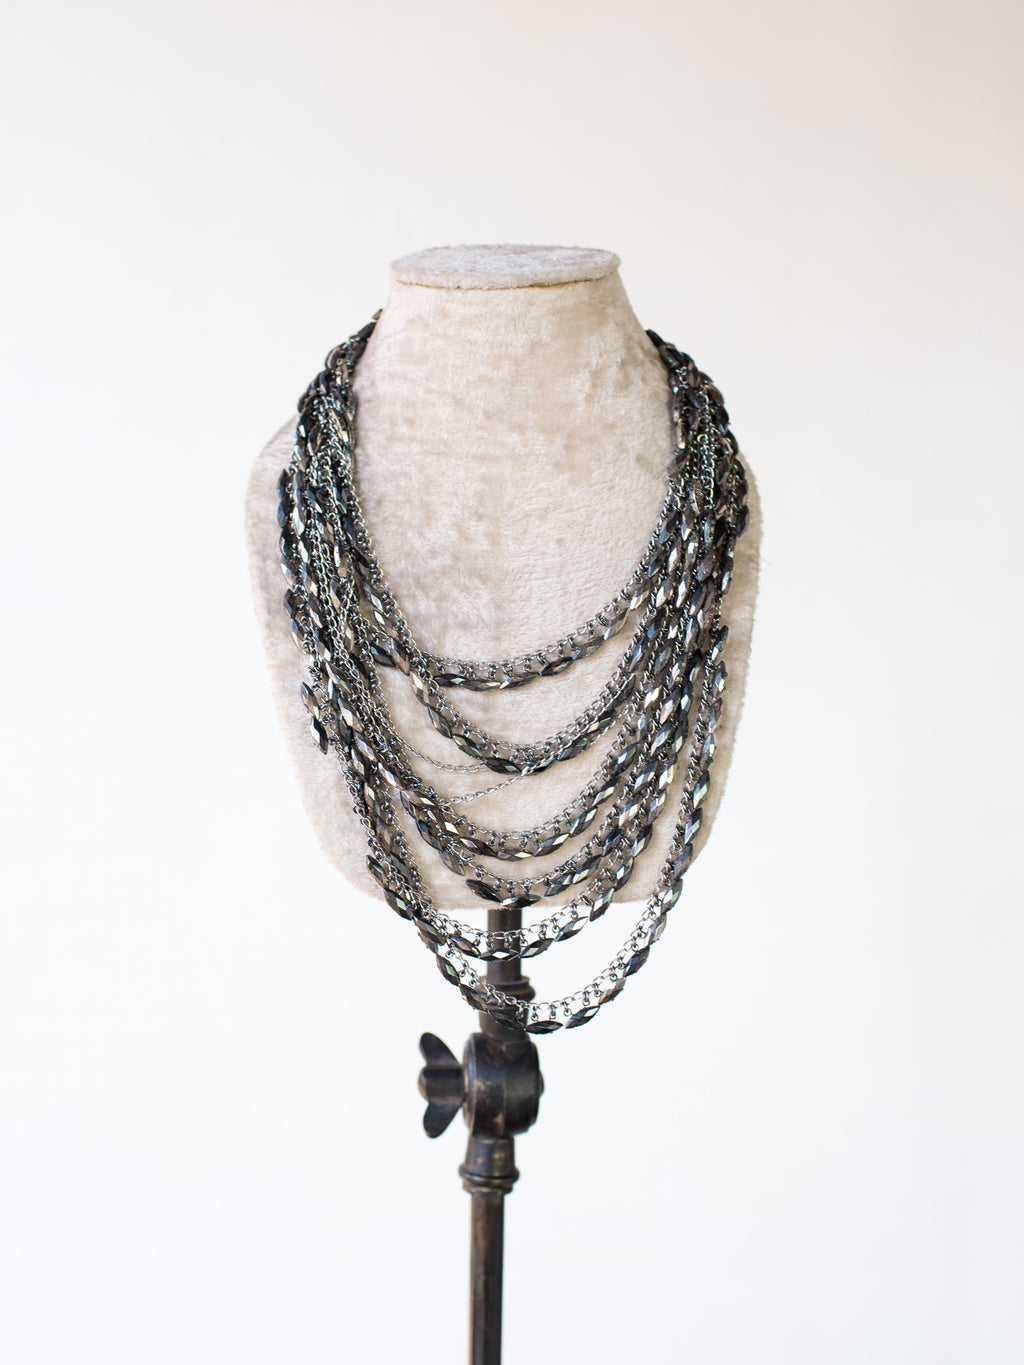 GLASS BEAD & CHAIN NECKLACE 127